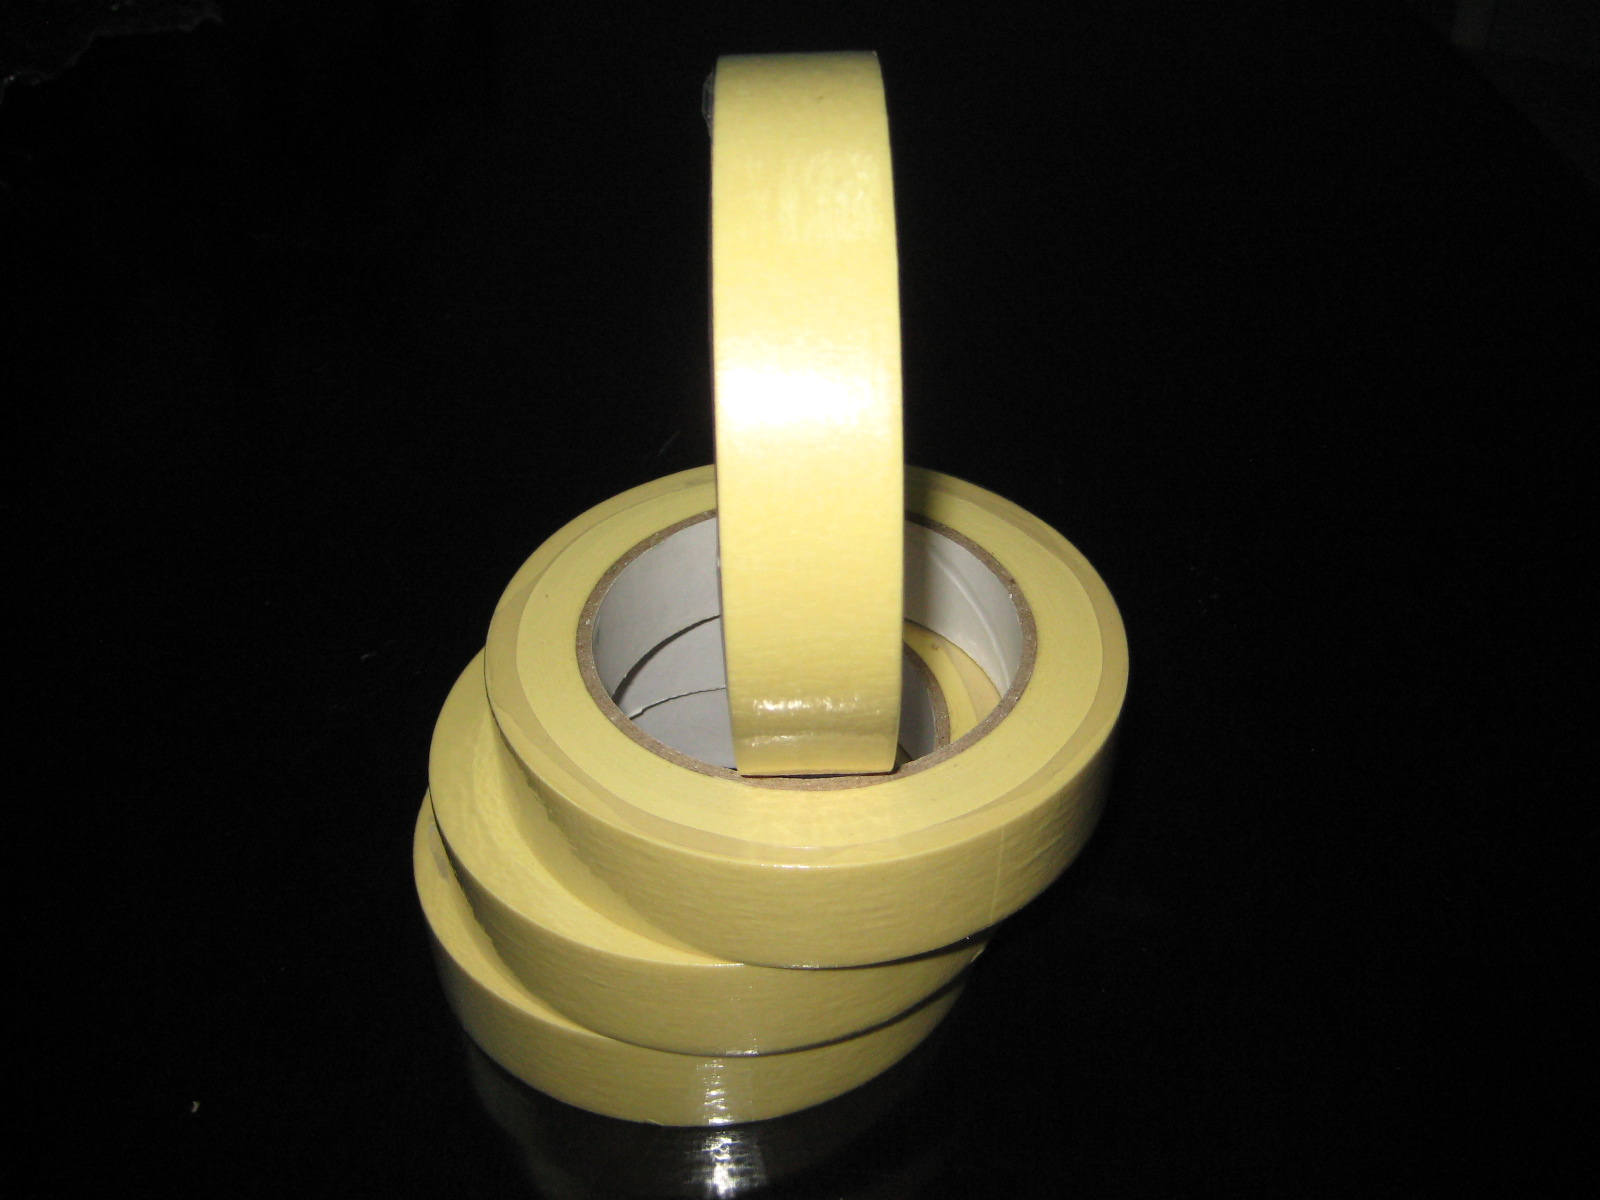 Made-in-China Masking Tape